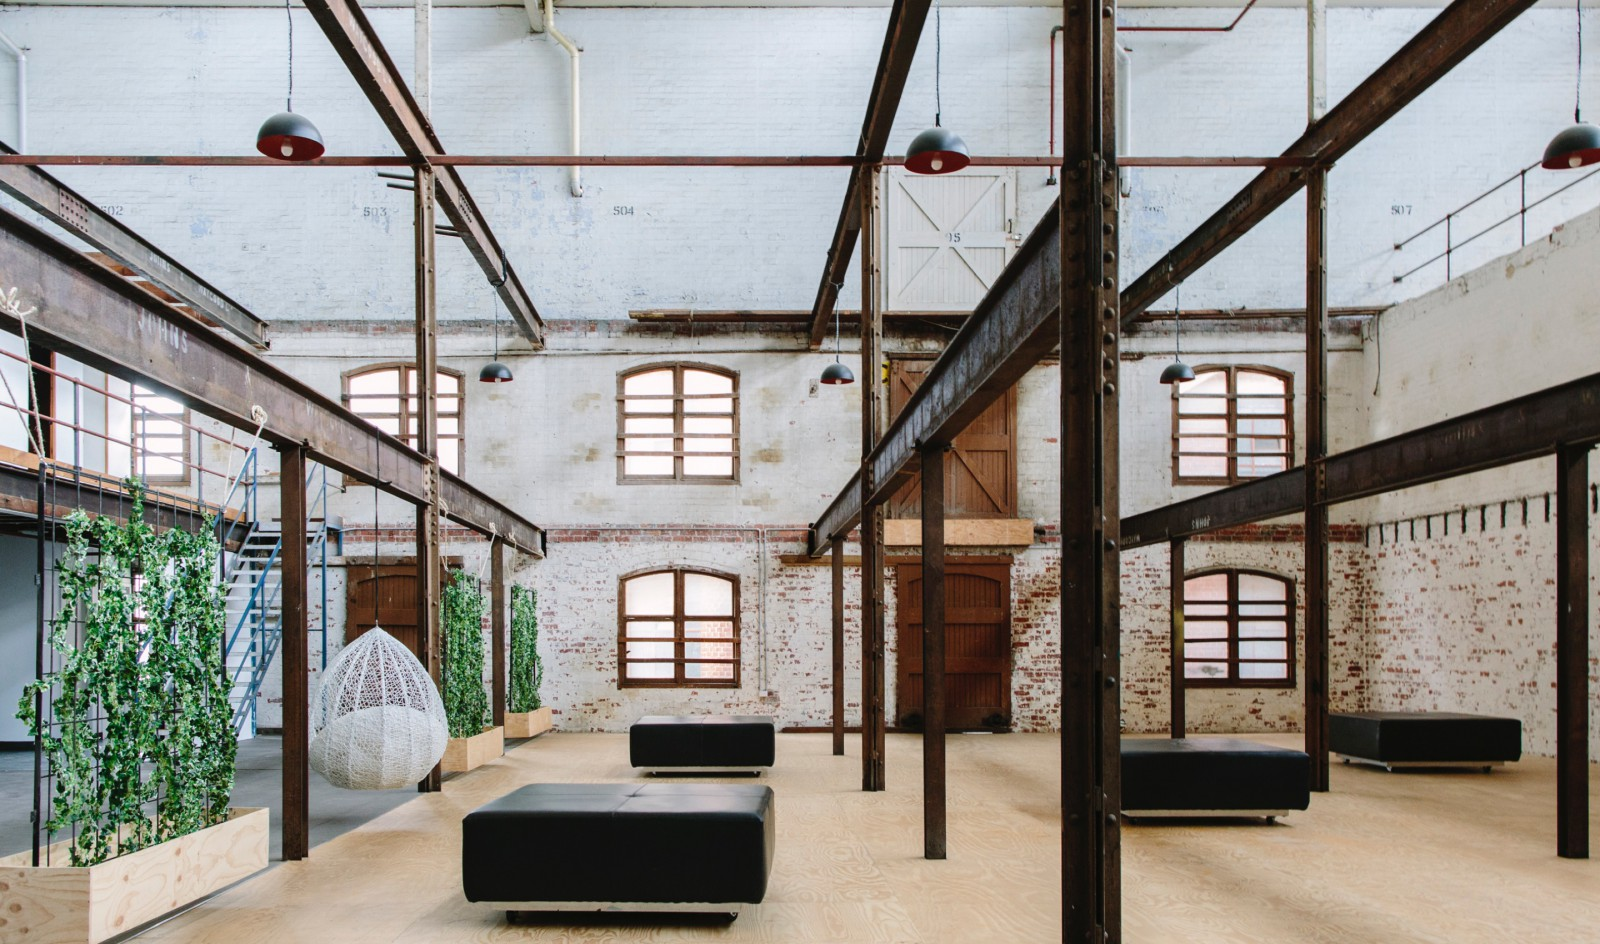 Formerly known as Kensington Collective, the 6,000 sq m space is designed to meet the specific needs and growth of local online retailers by offering co-working spaces